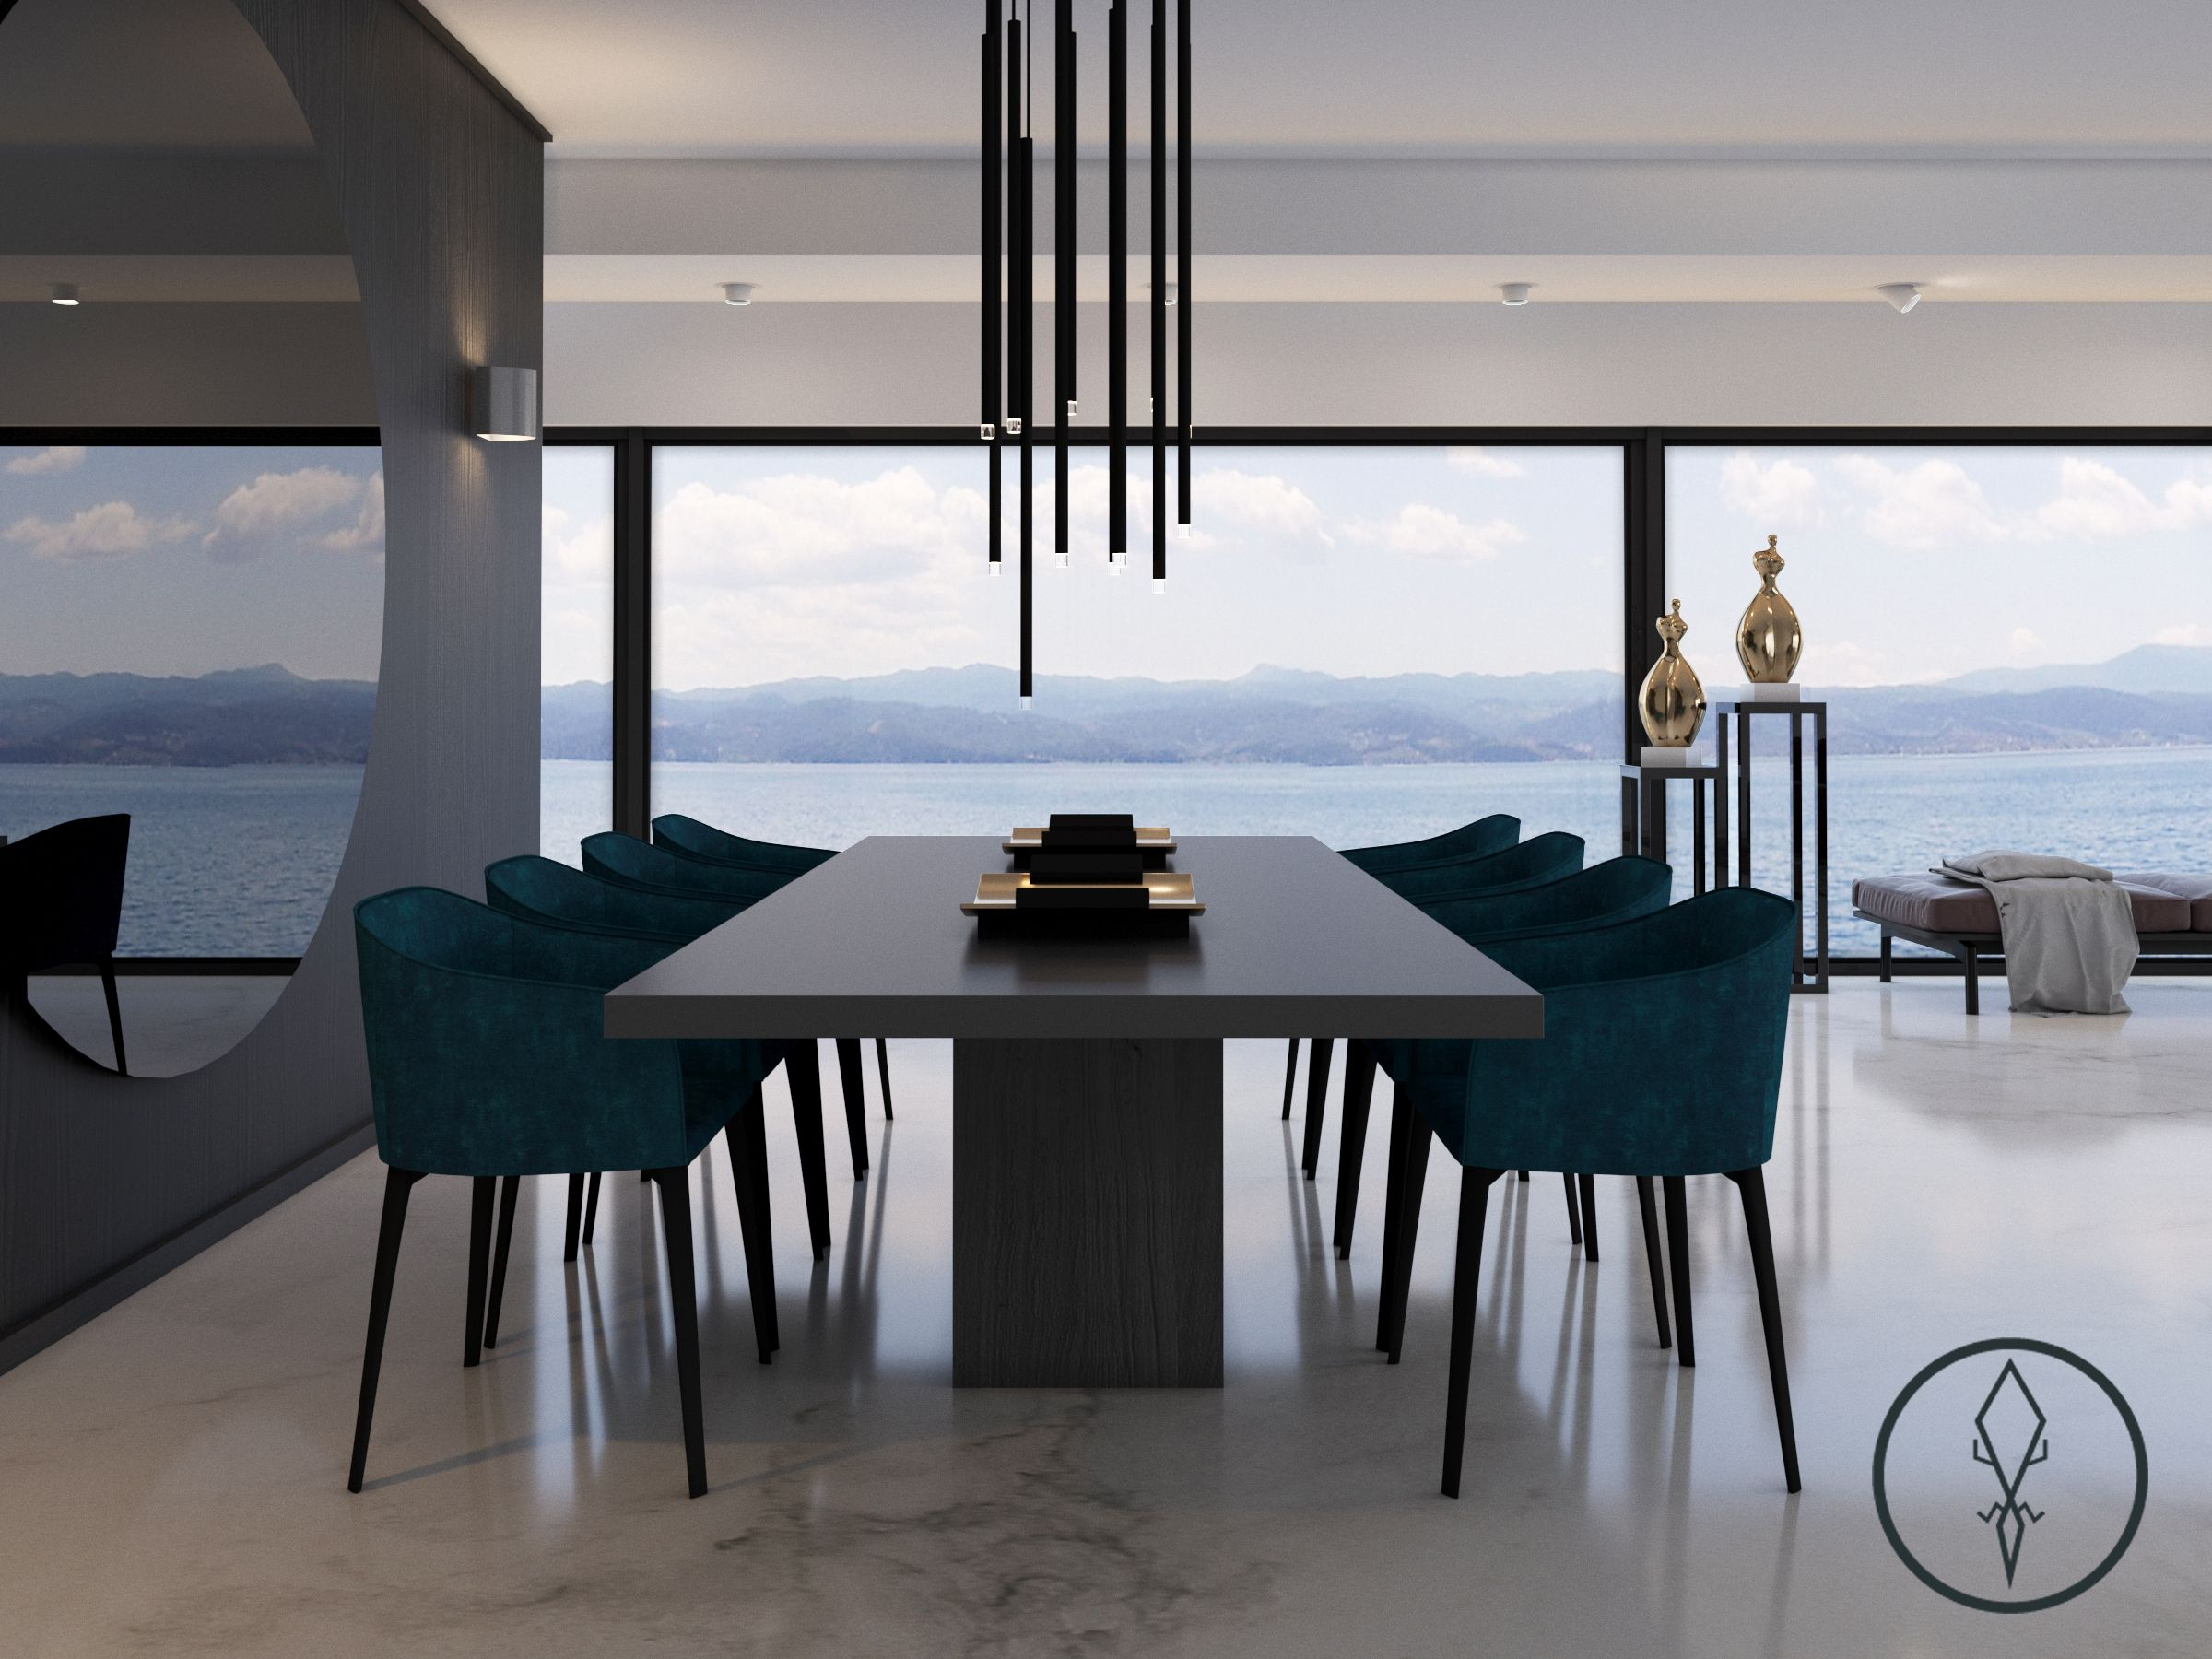 Raw Interiors Marbella : Decoration and design in marbella interior design marbella and